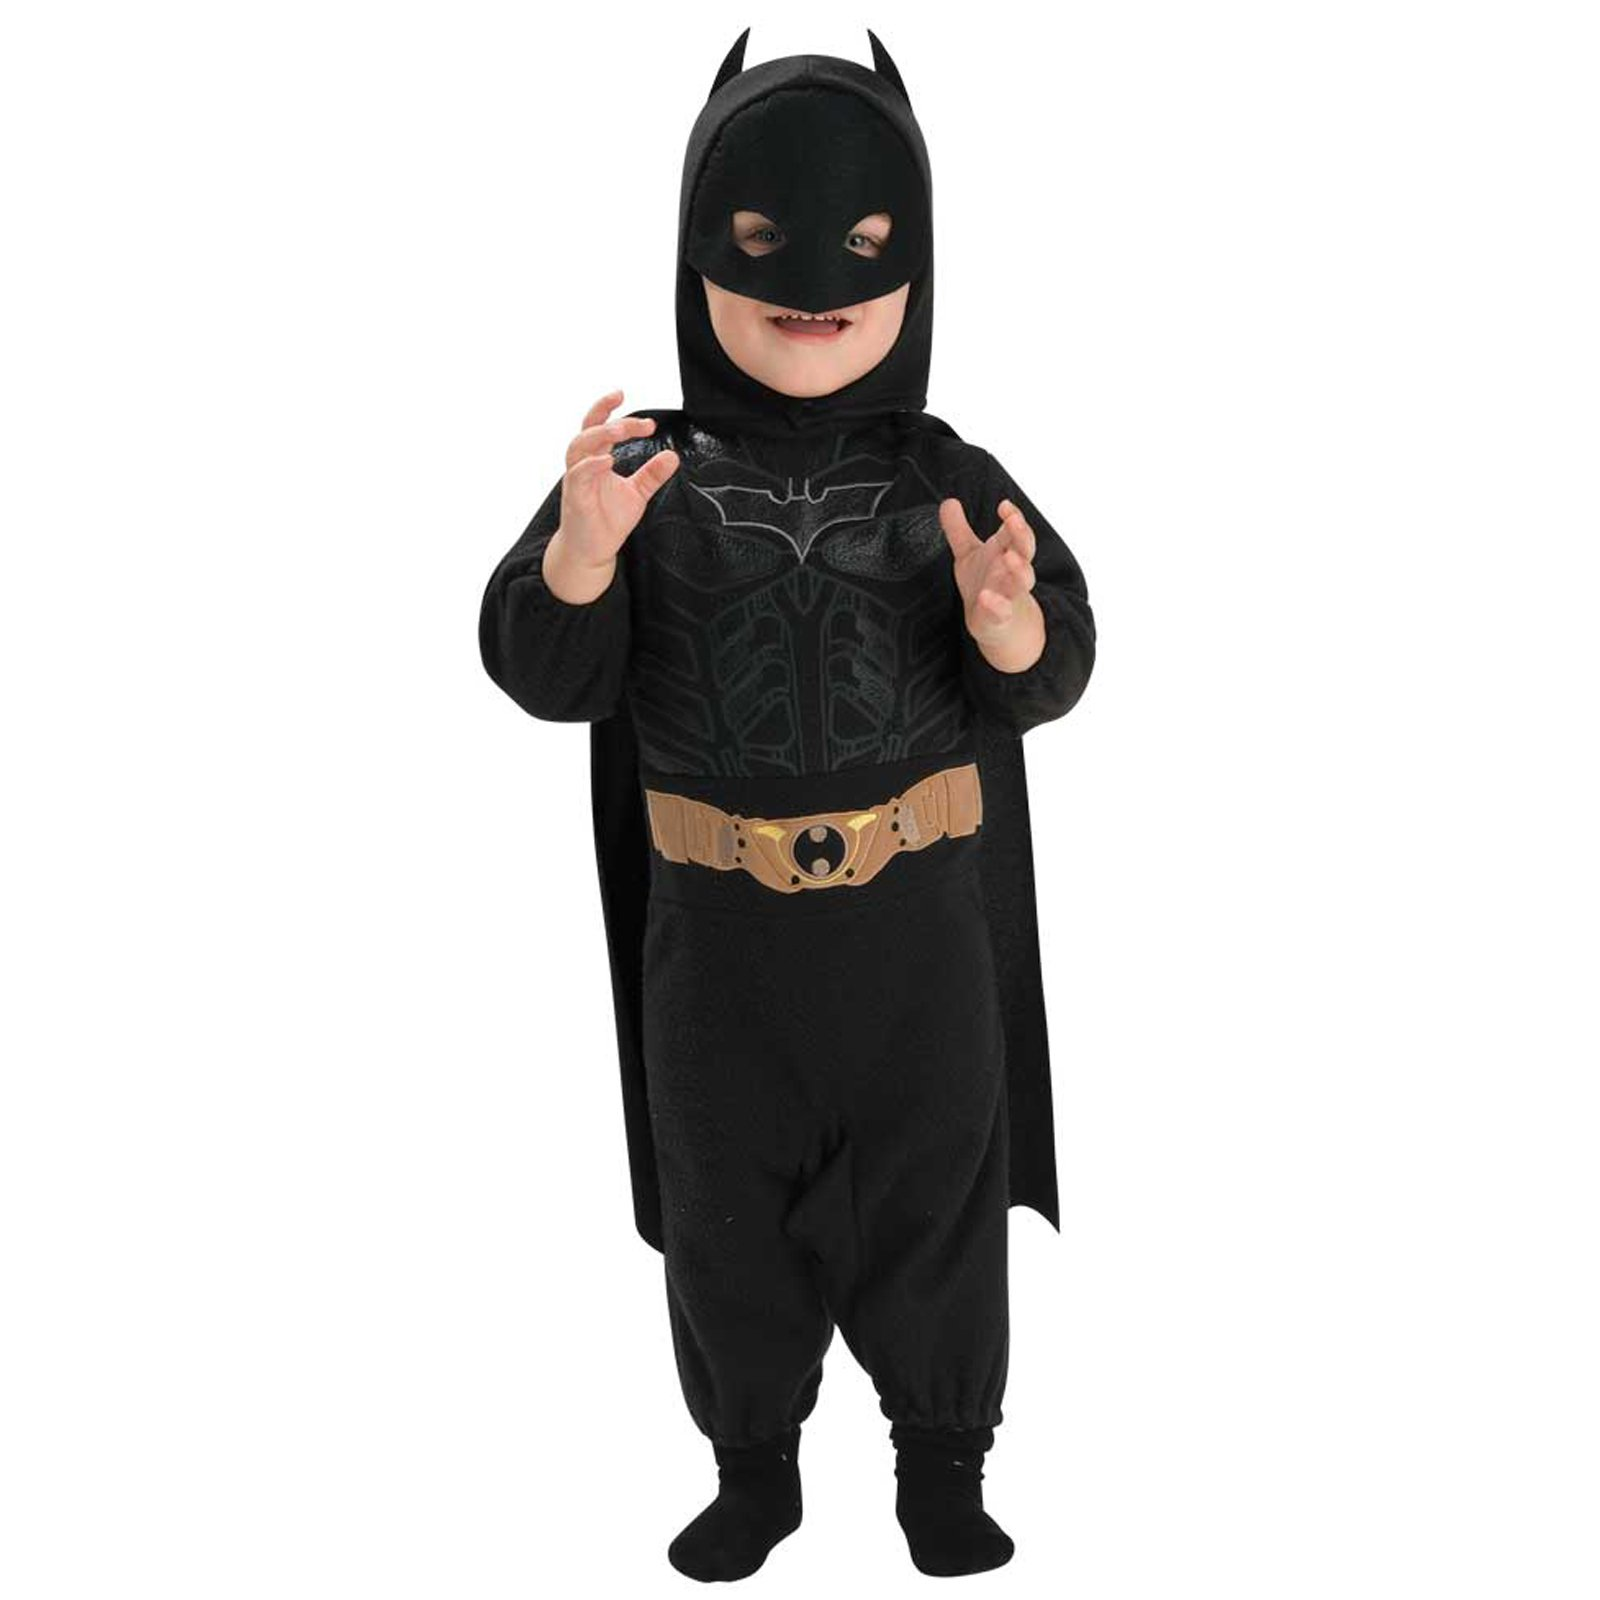 Batman The Dark Knight Rises Infant Costume